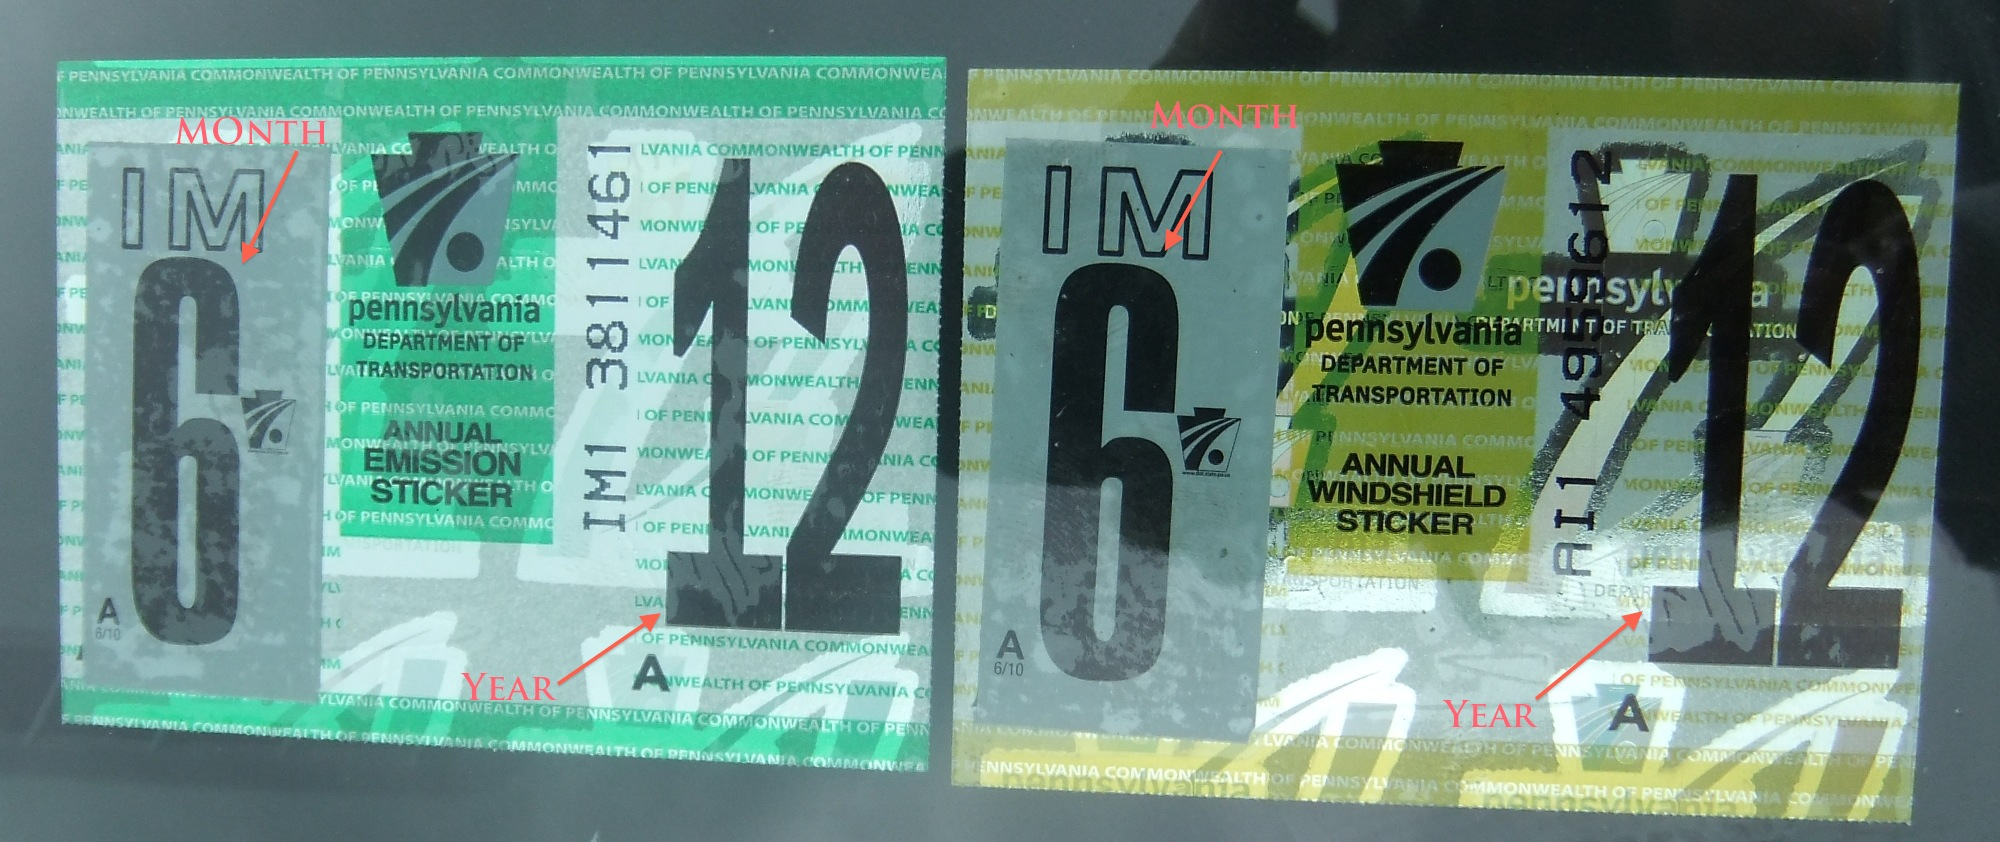 2012 Virginia State Inspection Sticker http://philapark.org/2012/01/inspection-sticker-dilemma/